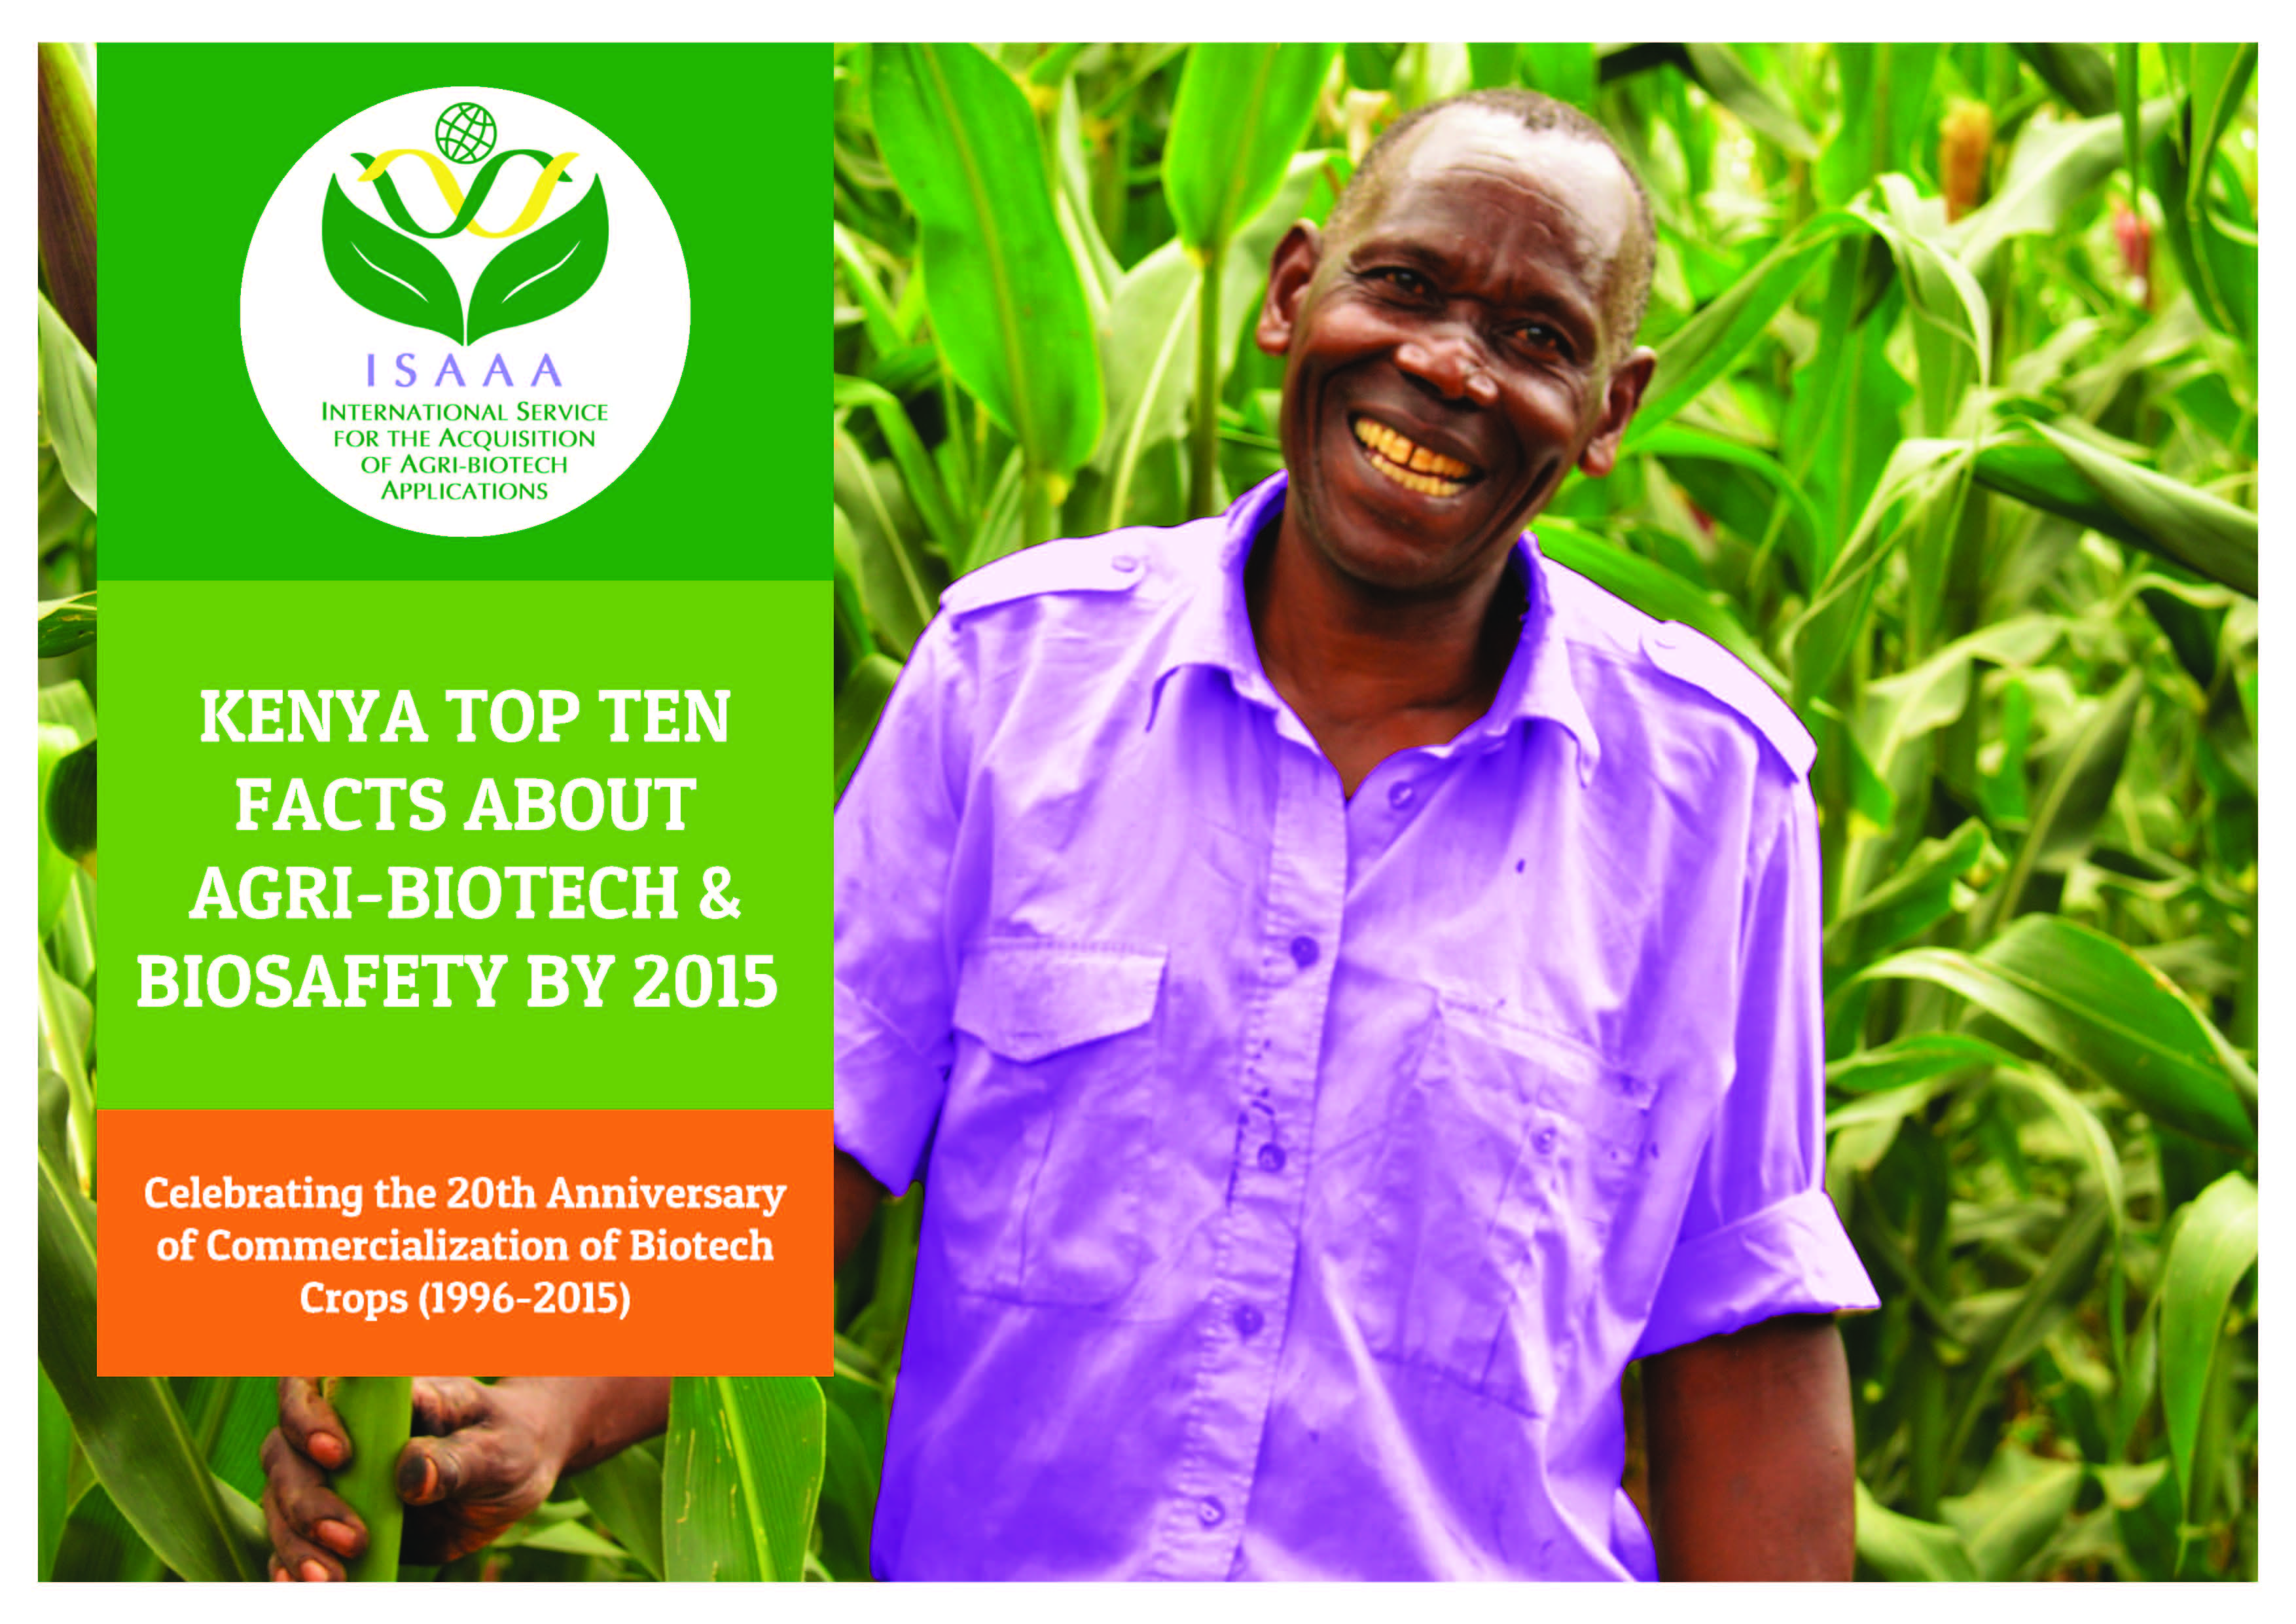 Kenya Top Ten Facts about Agri-Biotech and Biosafety by 2015